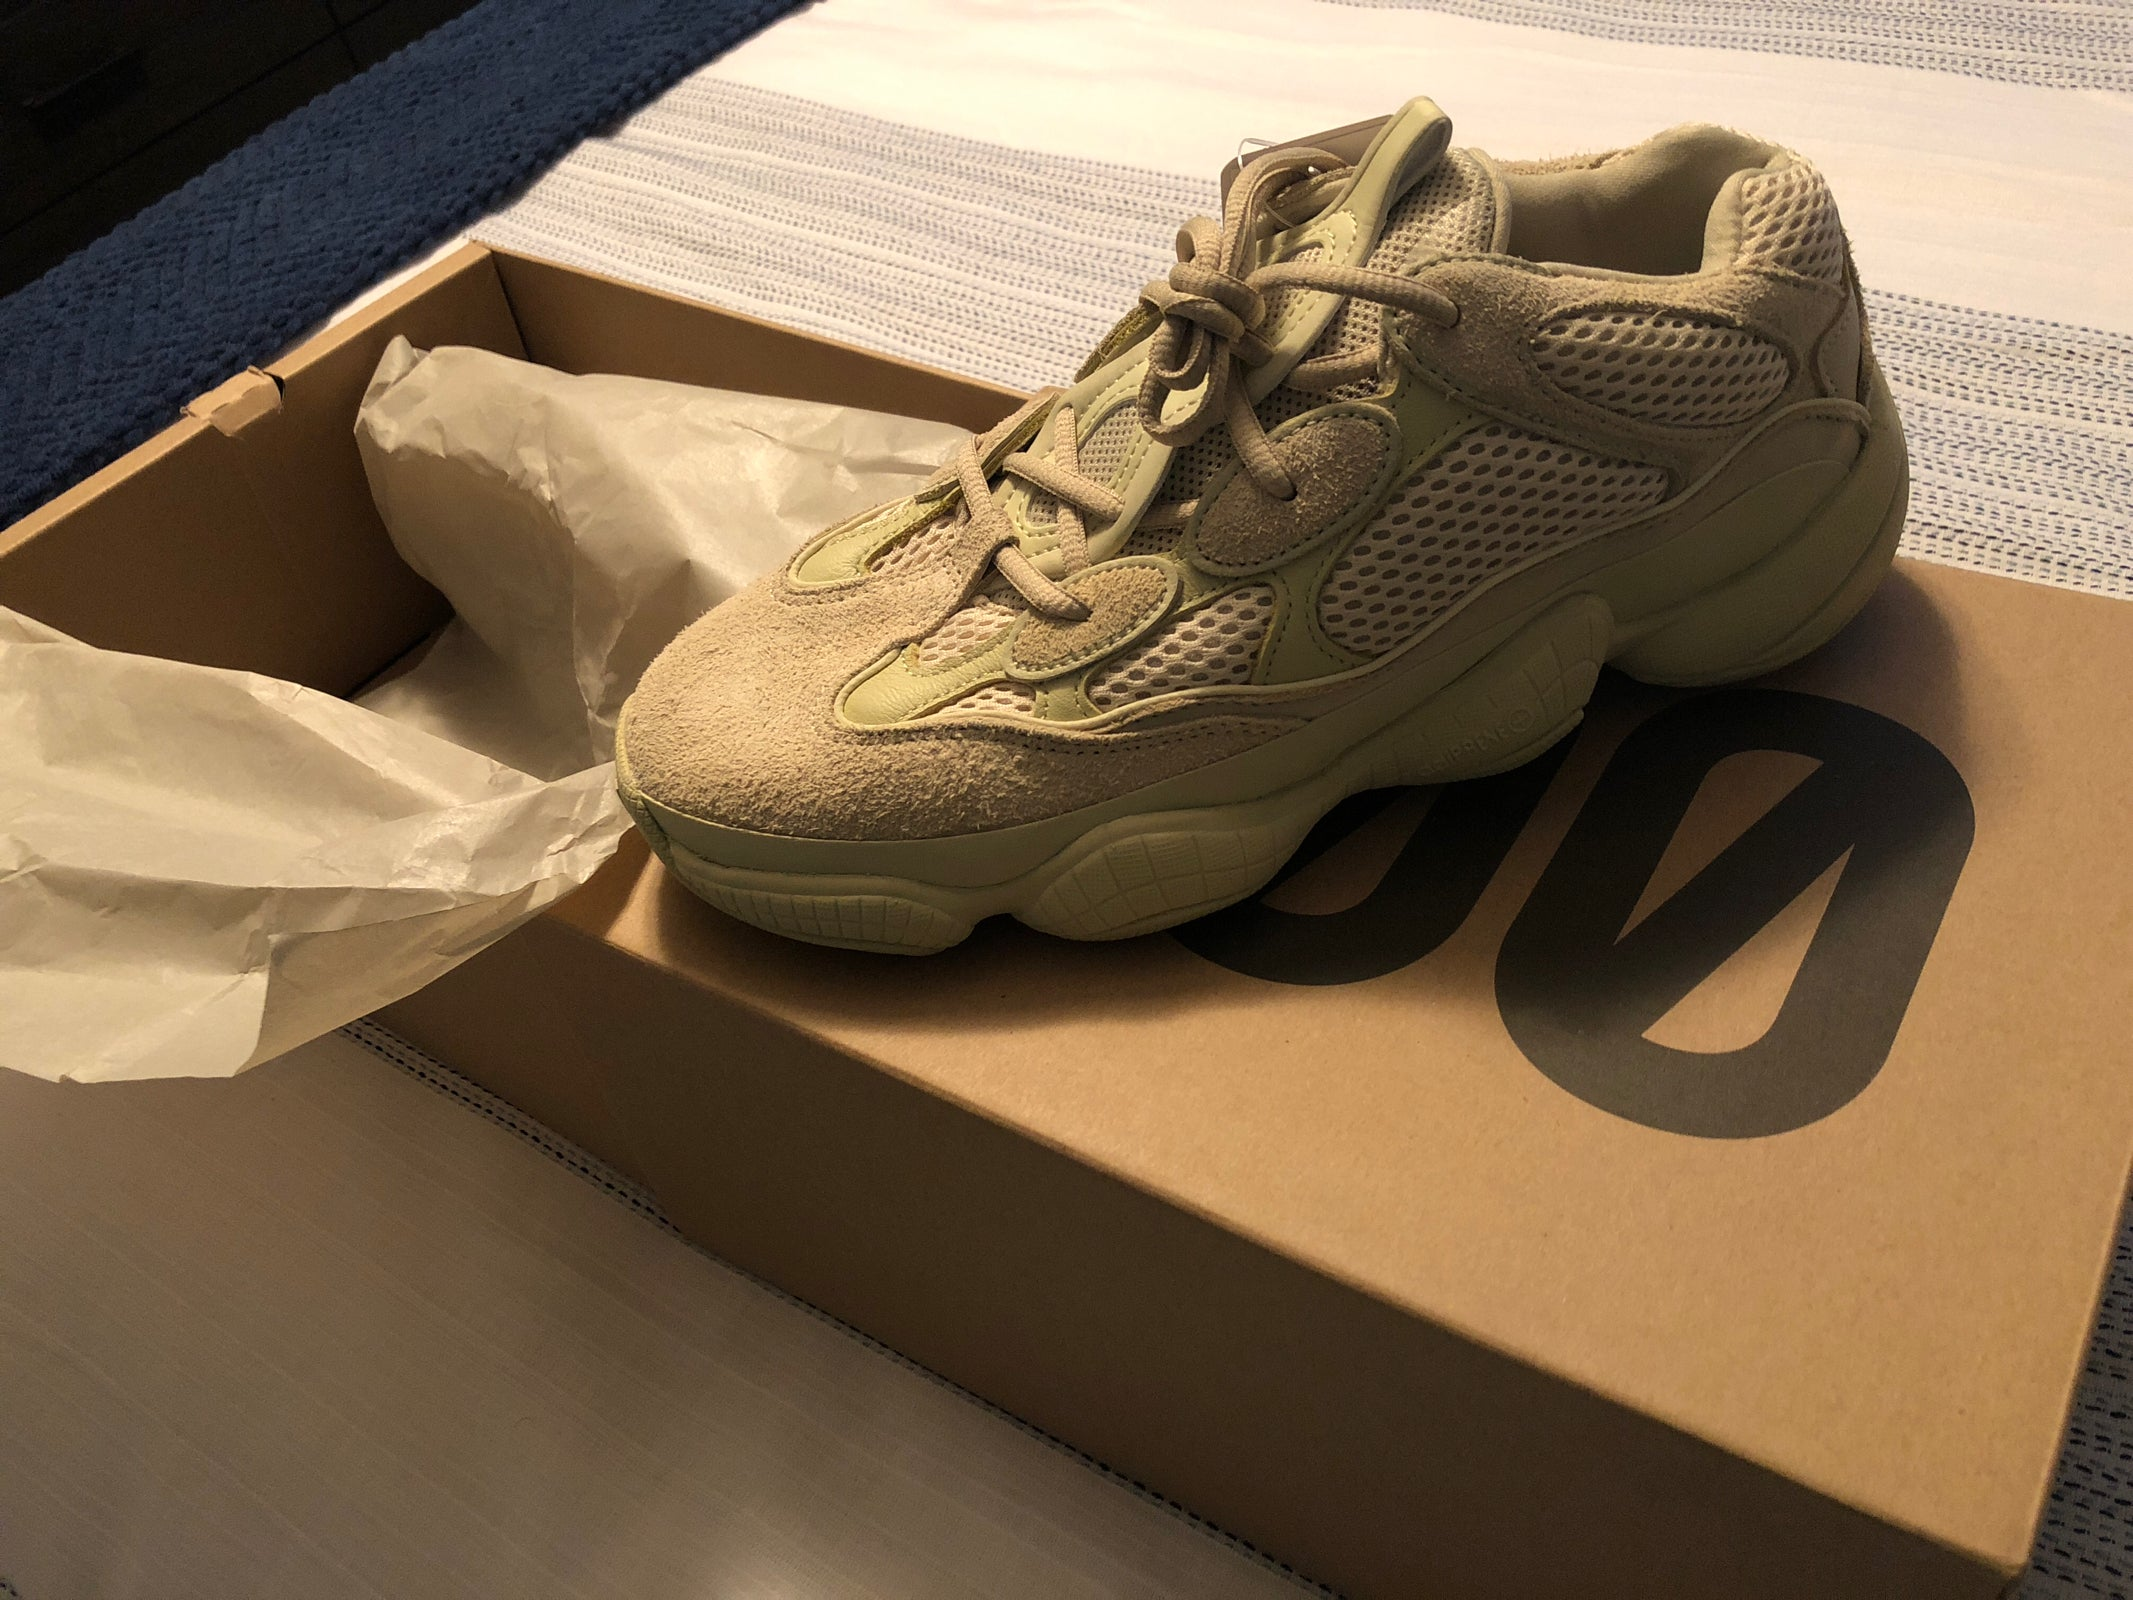 yeezy 500 outfit reddit